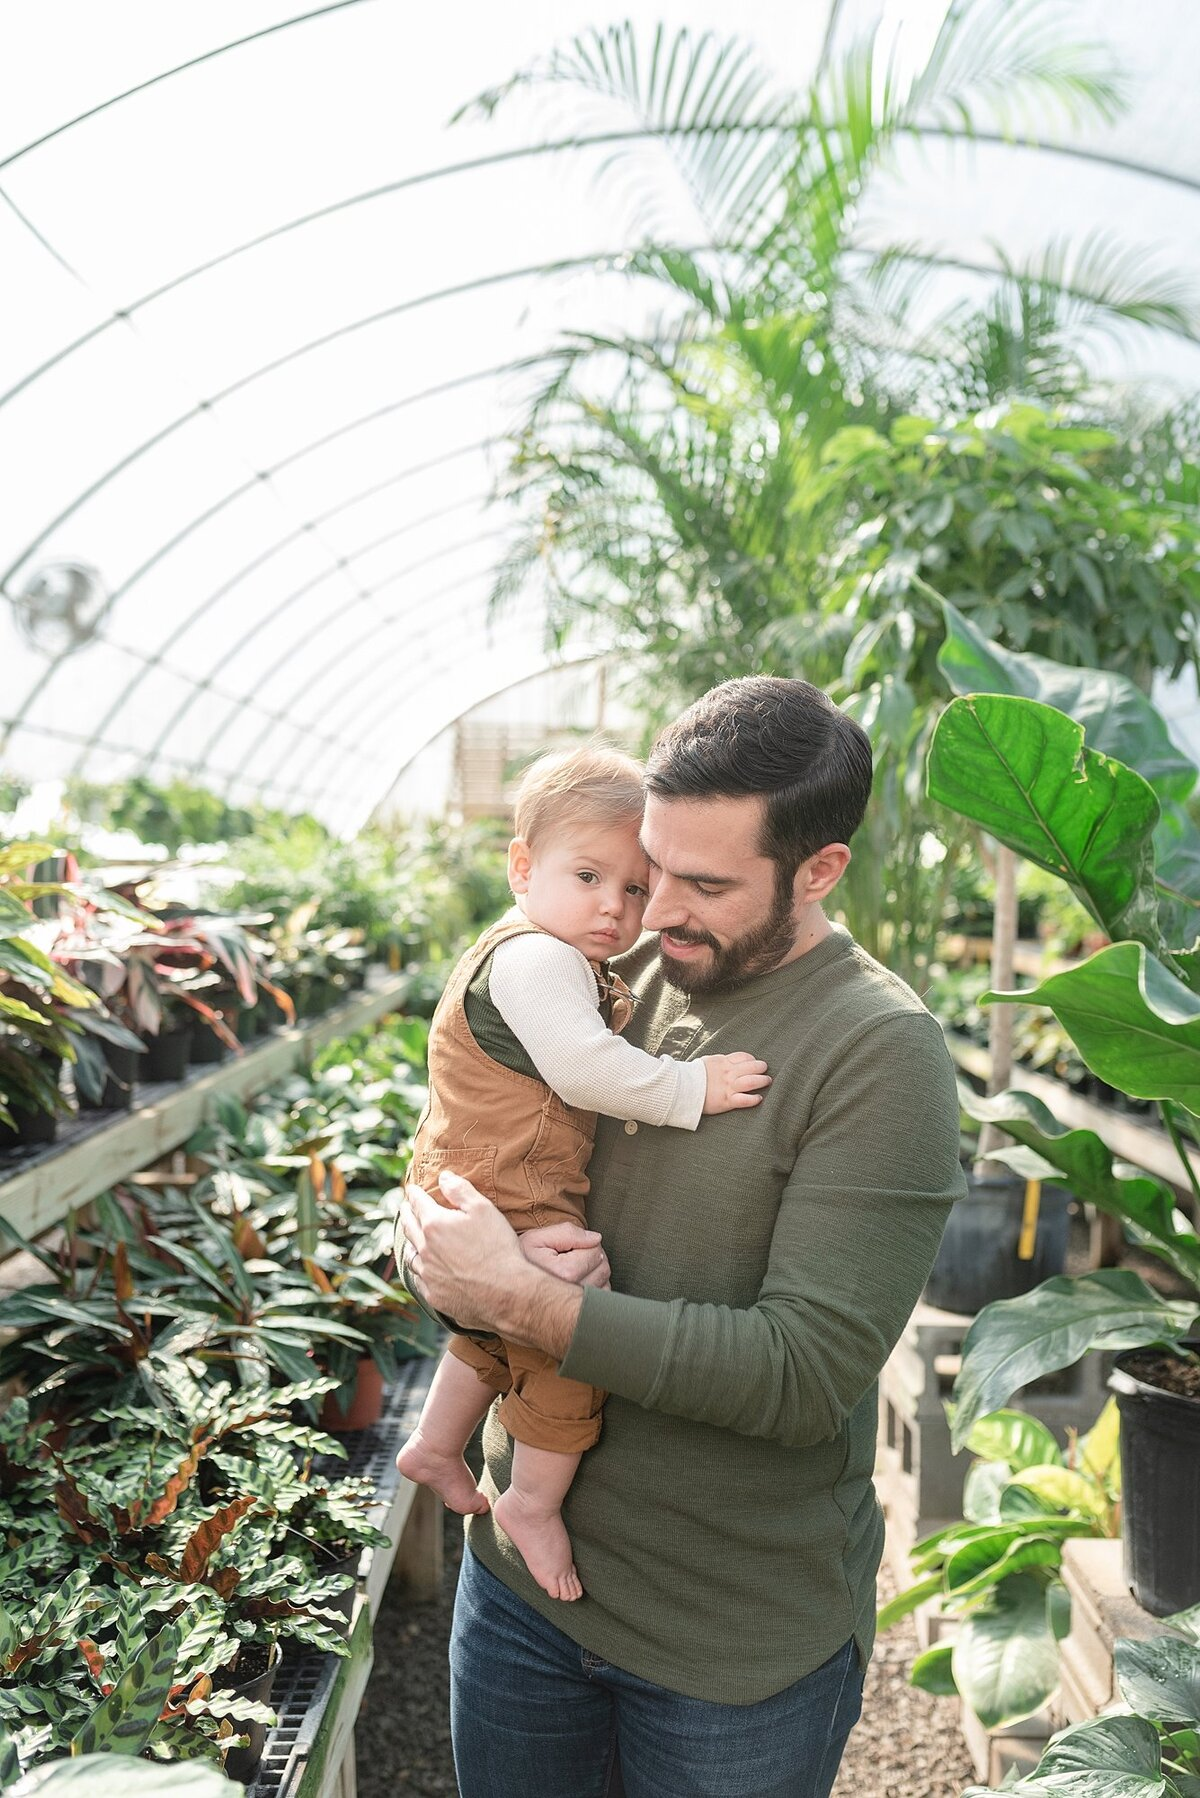 The Browning Family's Photo Session at the Hewitt Garden Center in Nashville by Nashville Family Photographer Dolly DeLong Photography